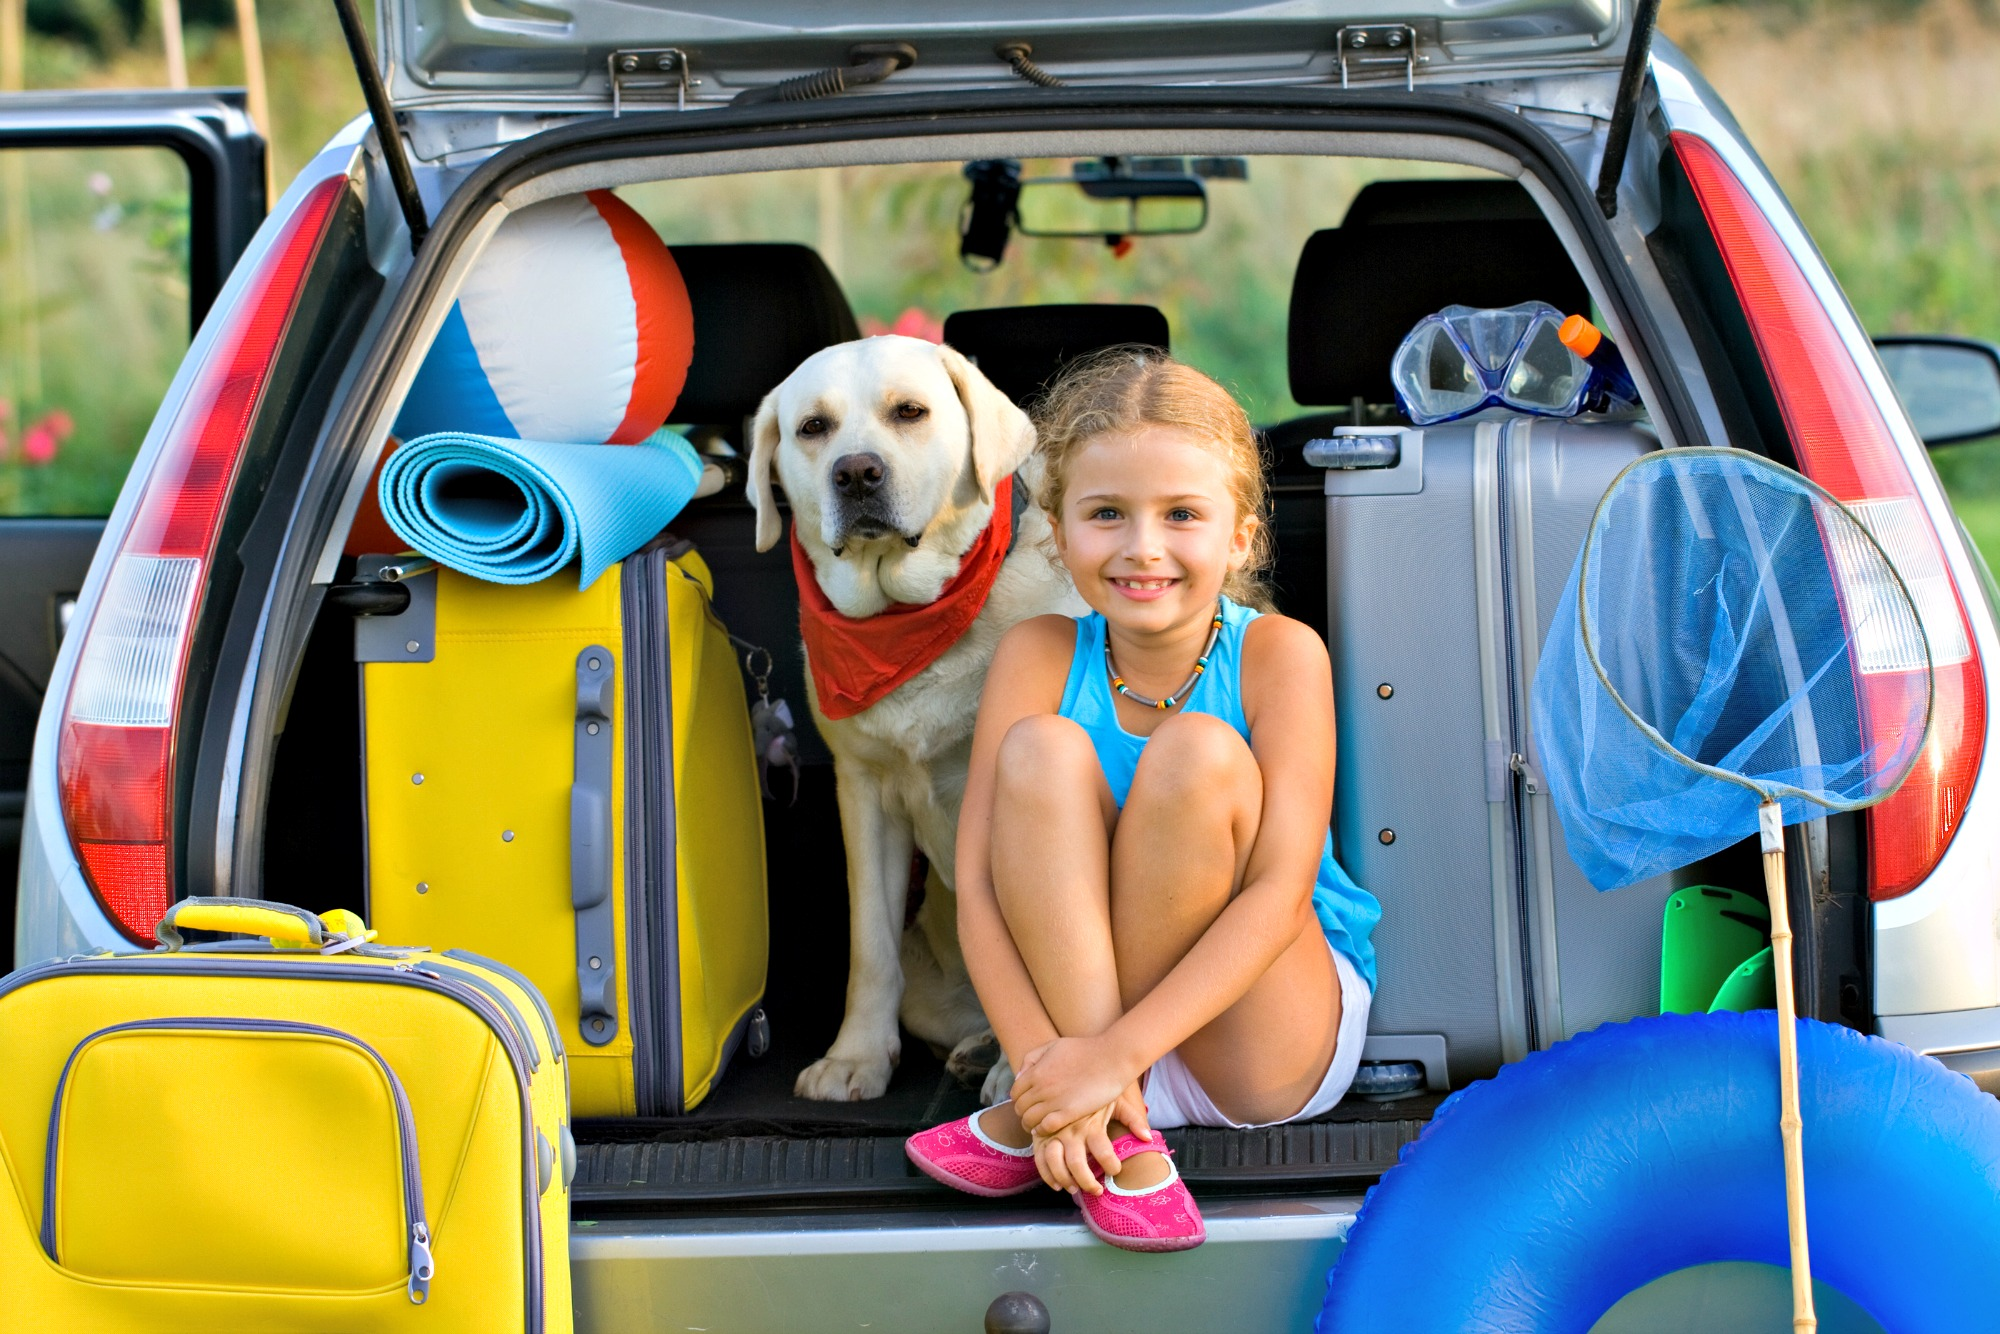 Ready to travel with the famiy dog to the beach